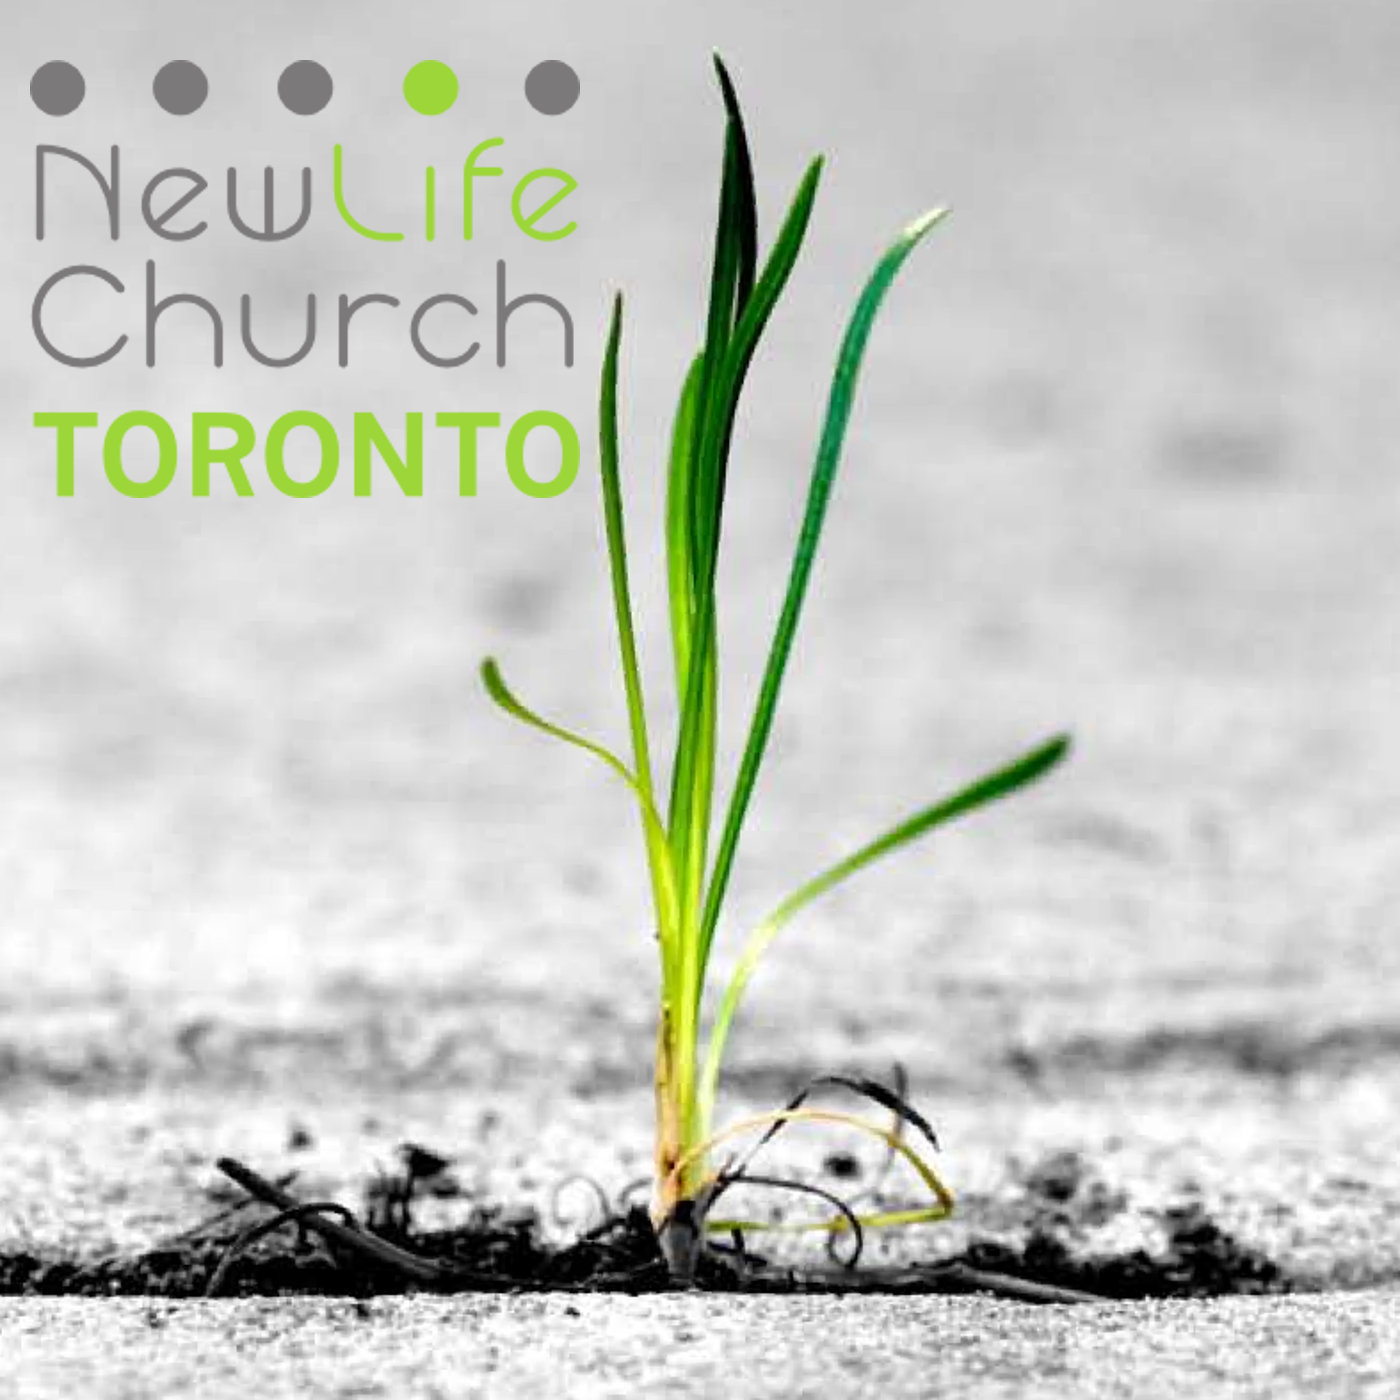 Newlife Church, Toronto